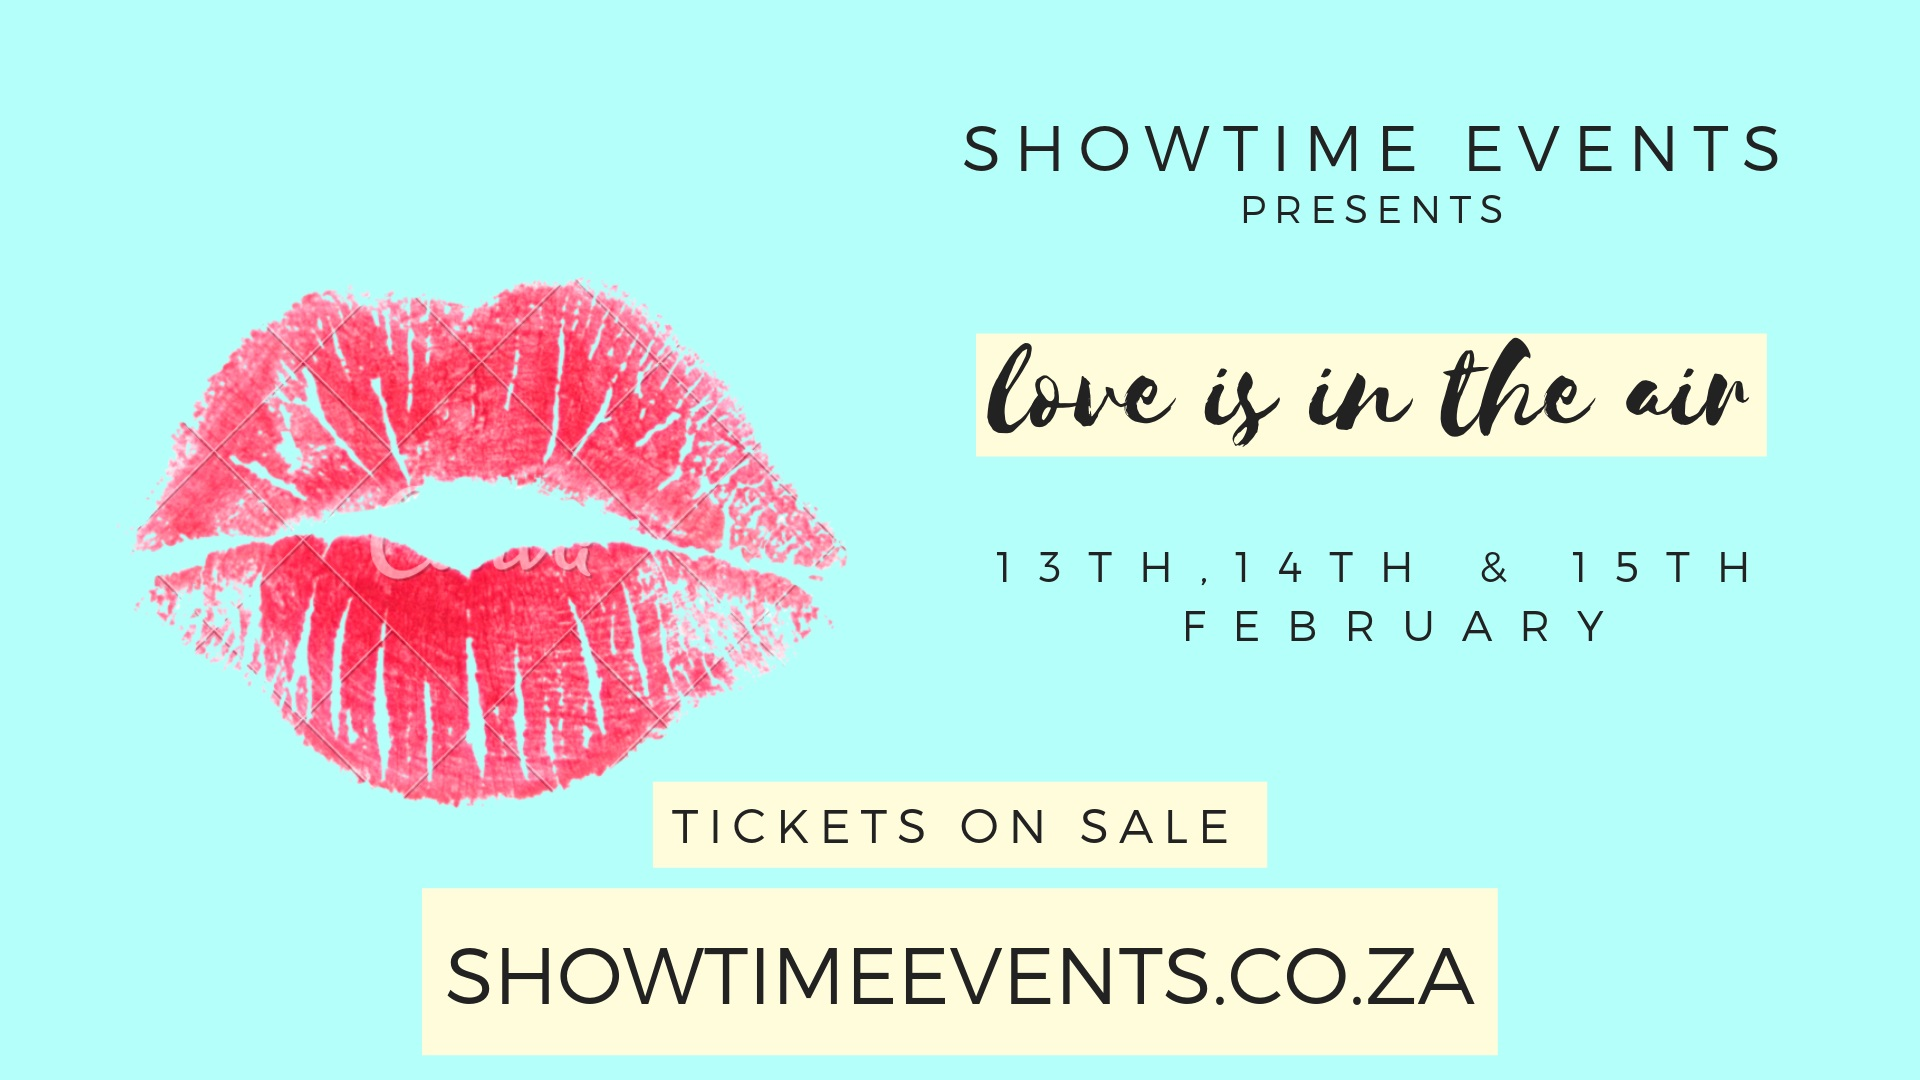 Performing Waiters in Love Is In The Air This Valentine's, Durban North, KwaZulu-Natal, South Africa